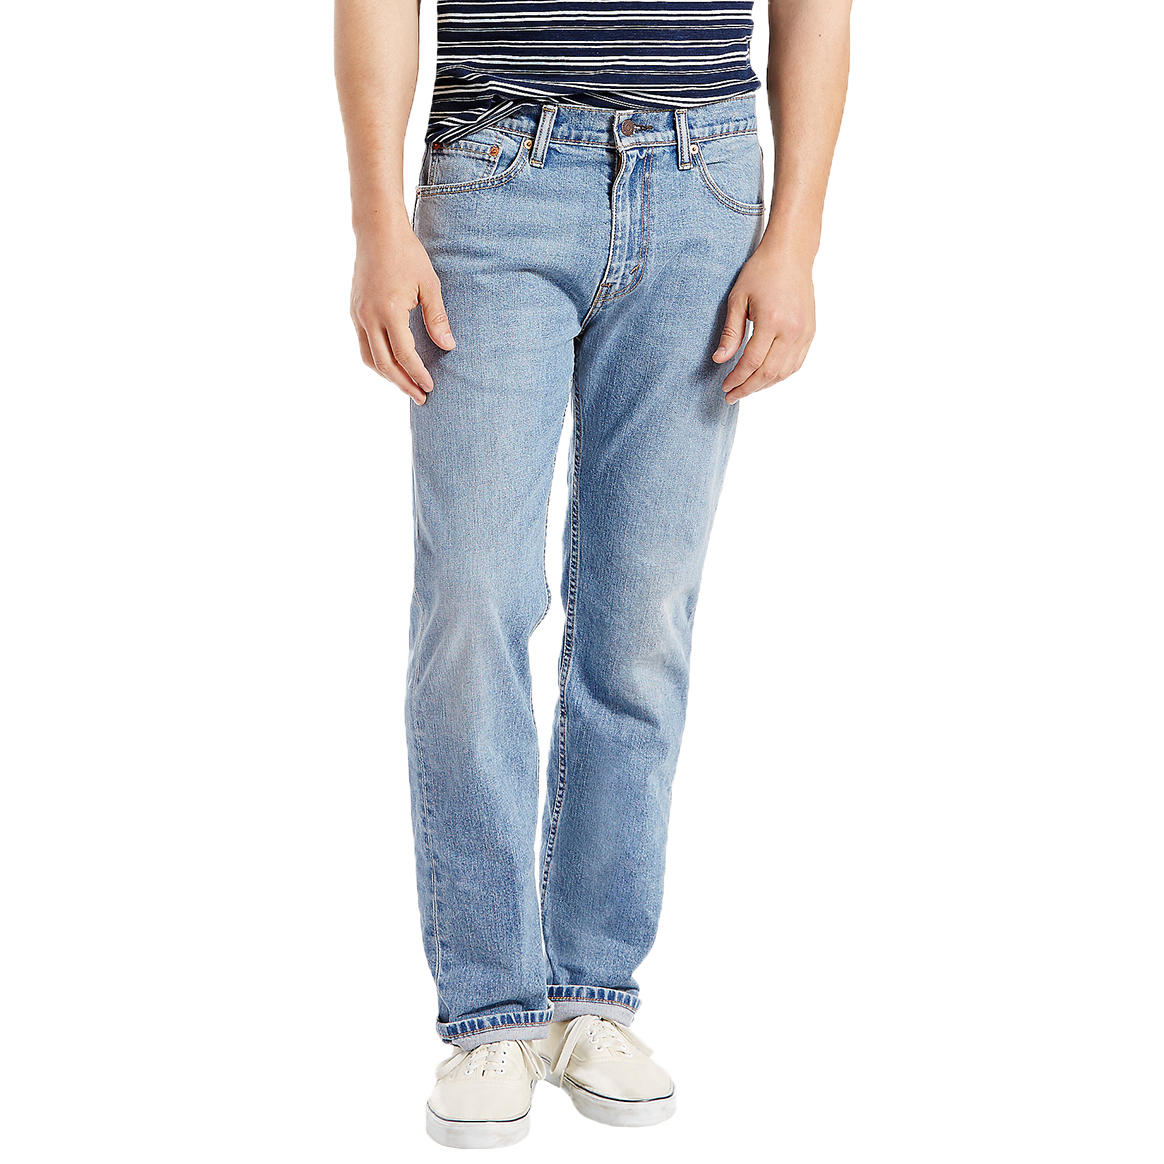 Levi's Men's 505 Regular Fit Jeans - Blue, 30/30